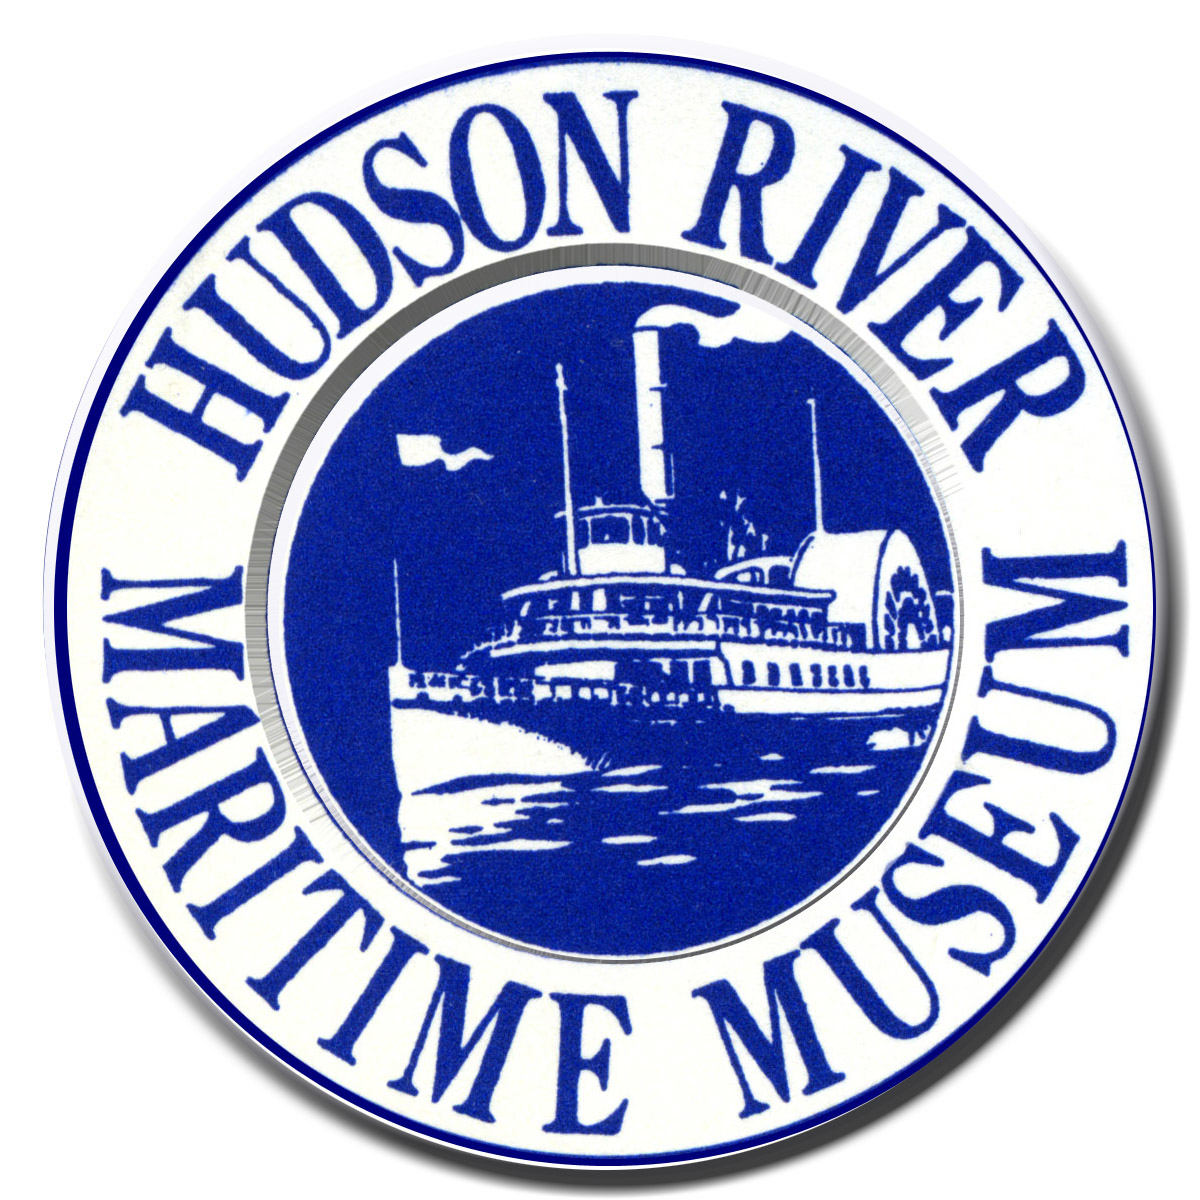 hudson river maritime museum, hudson river history, fishermen, fishing stories, fishing history